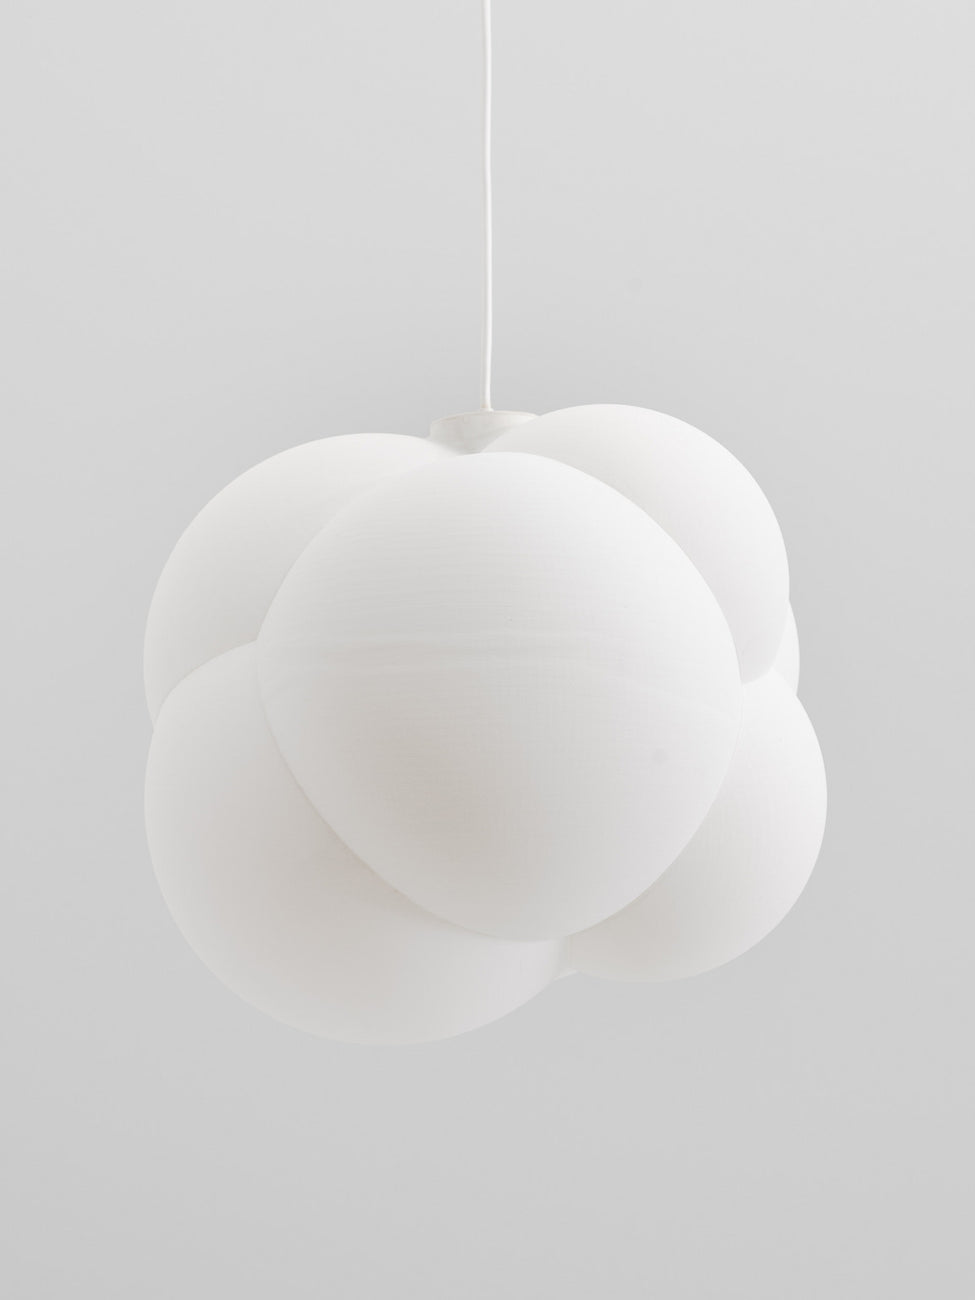 Hilla pendant lamp, small